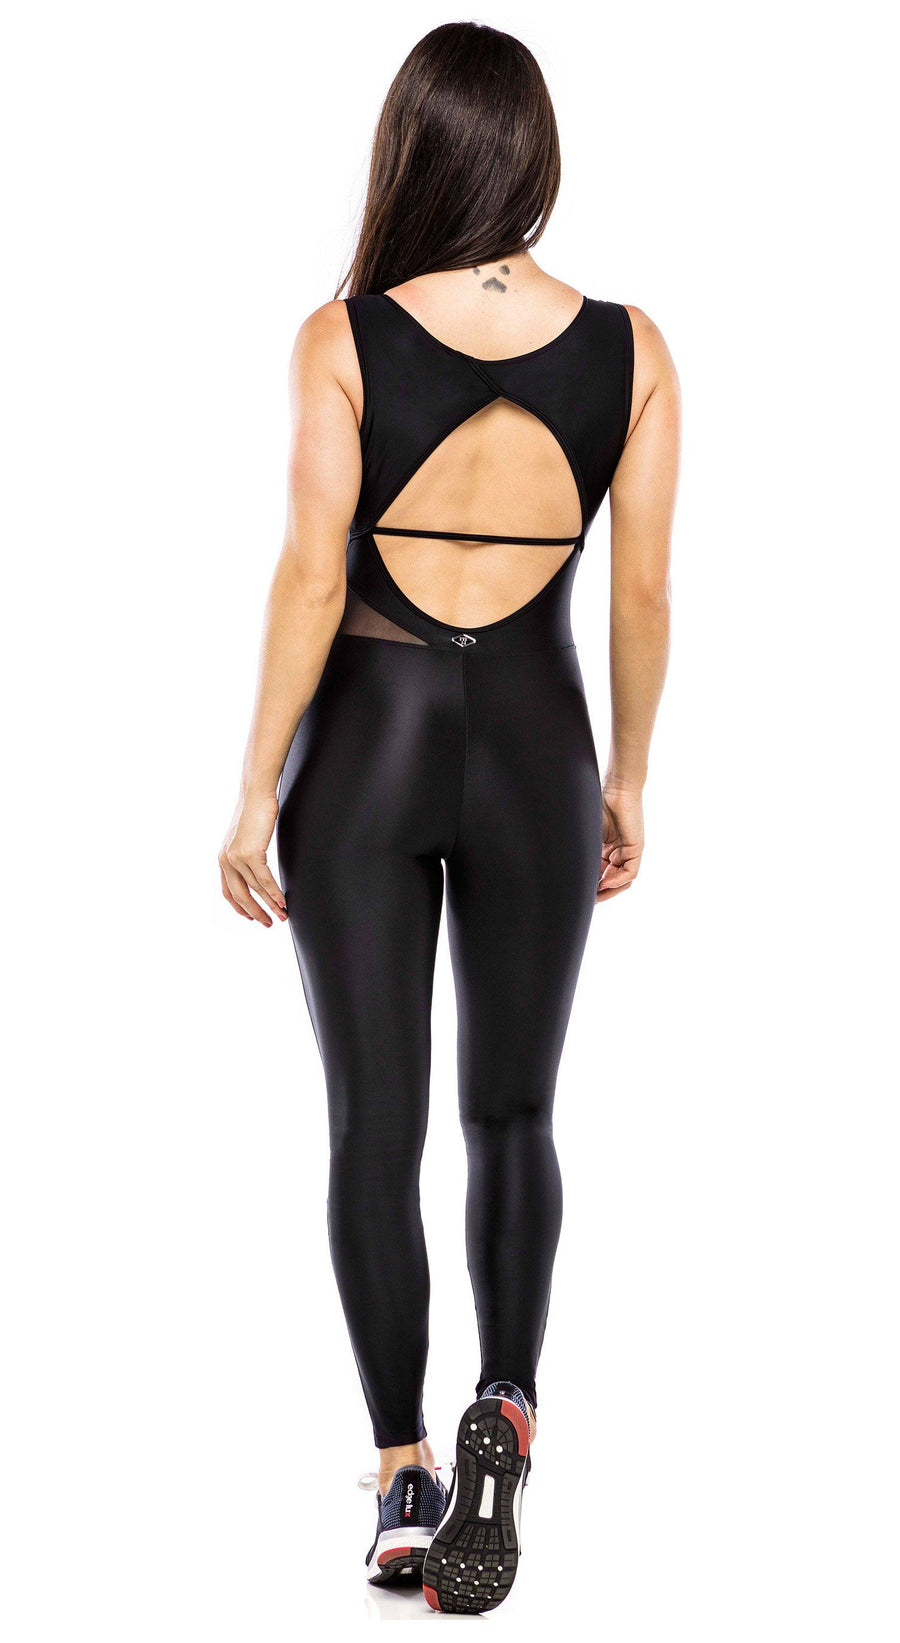 Brazilian Workout Jumpsuit - Muds Shiny Black